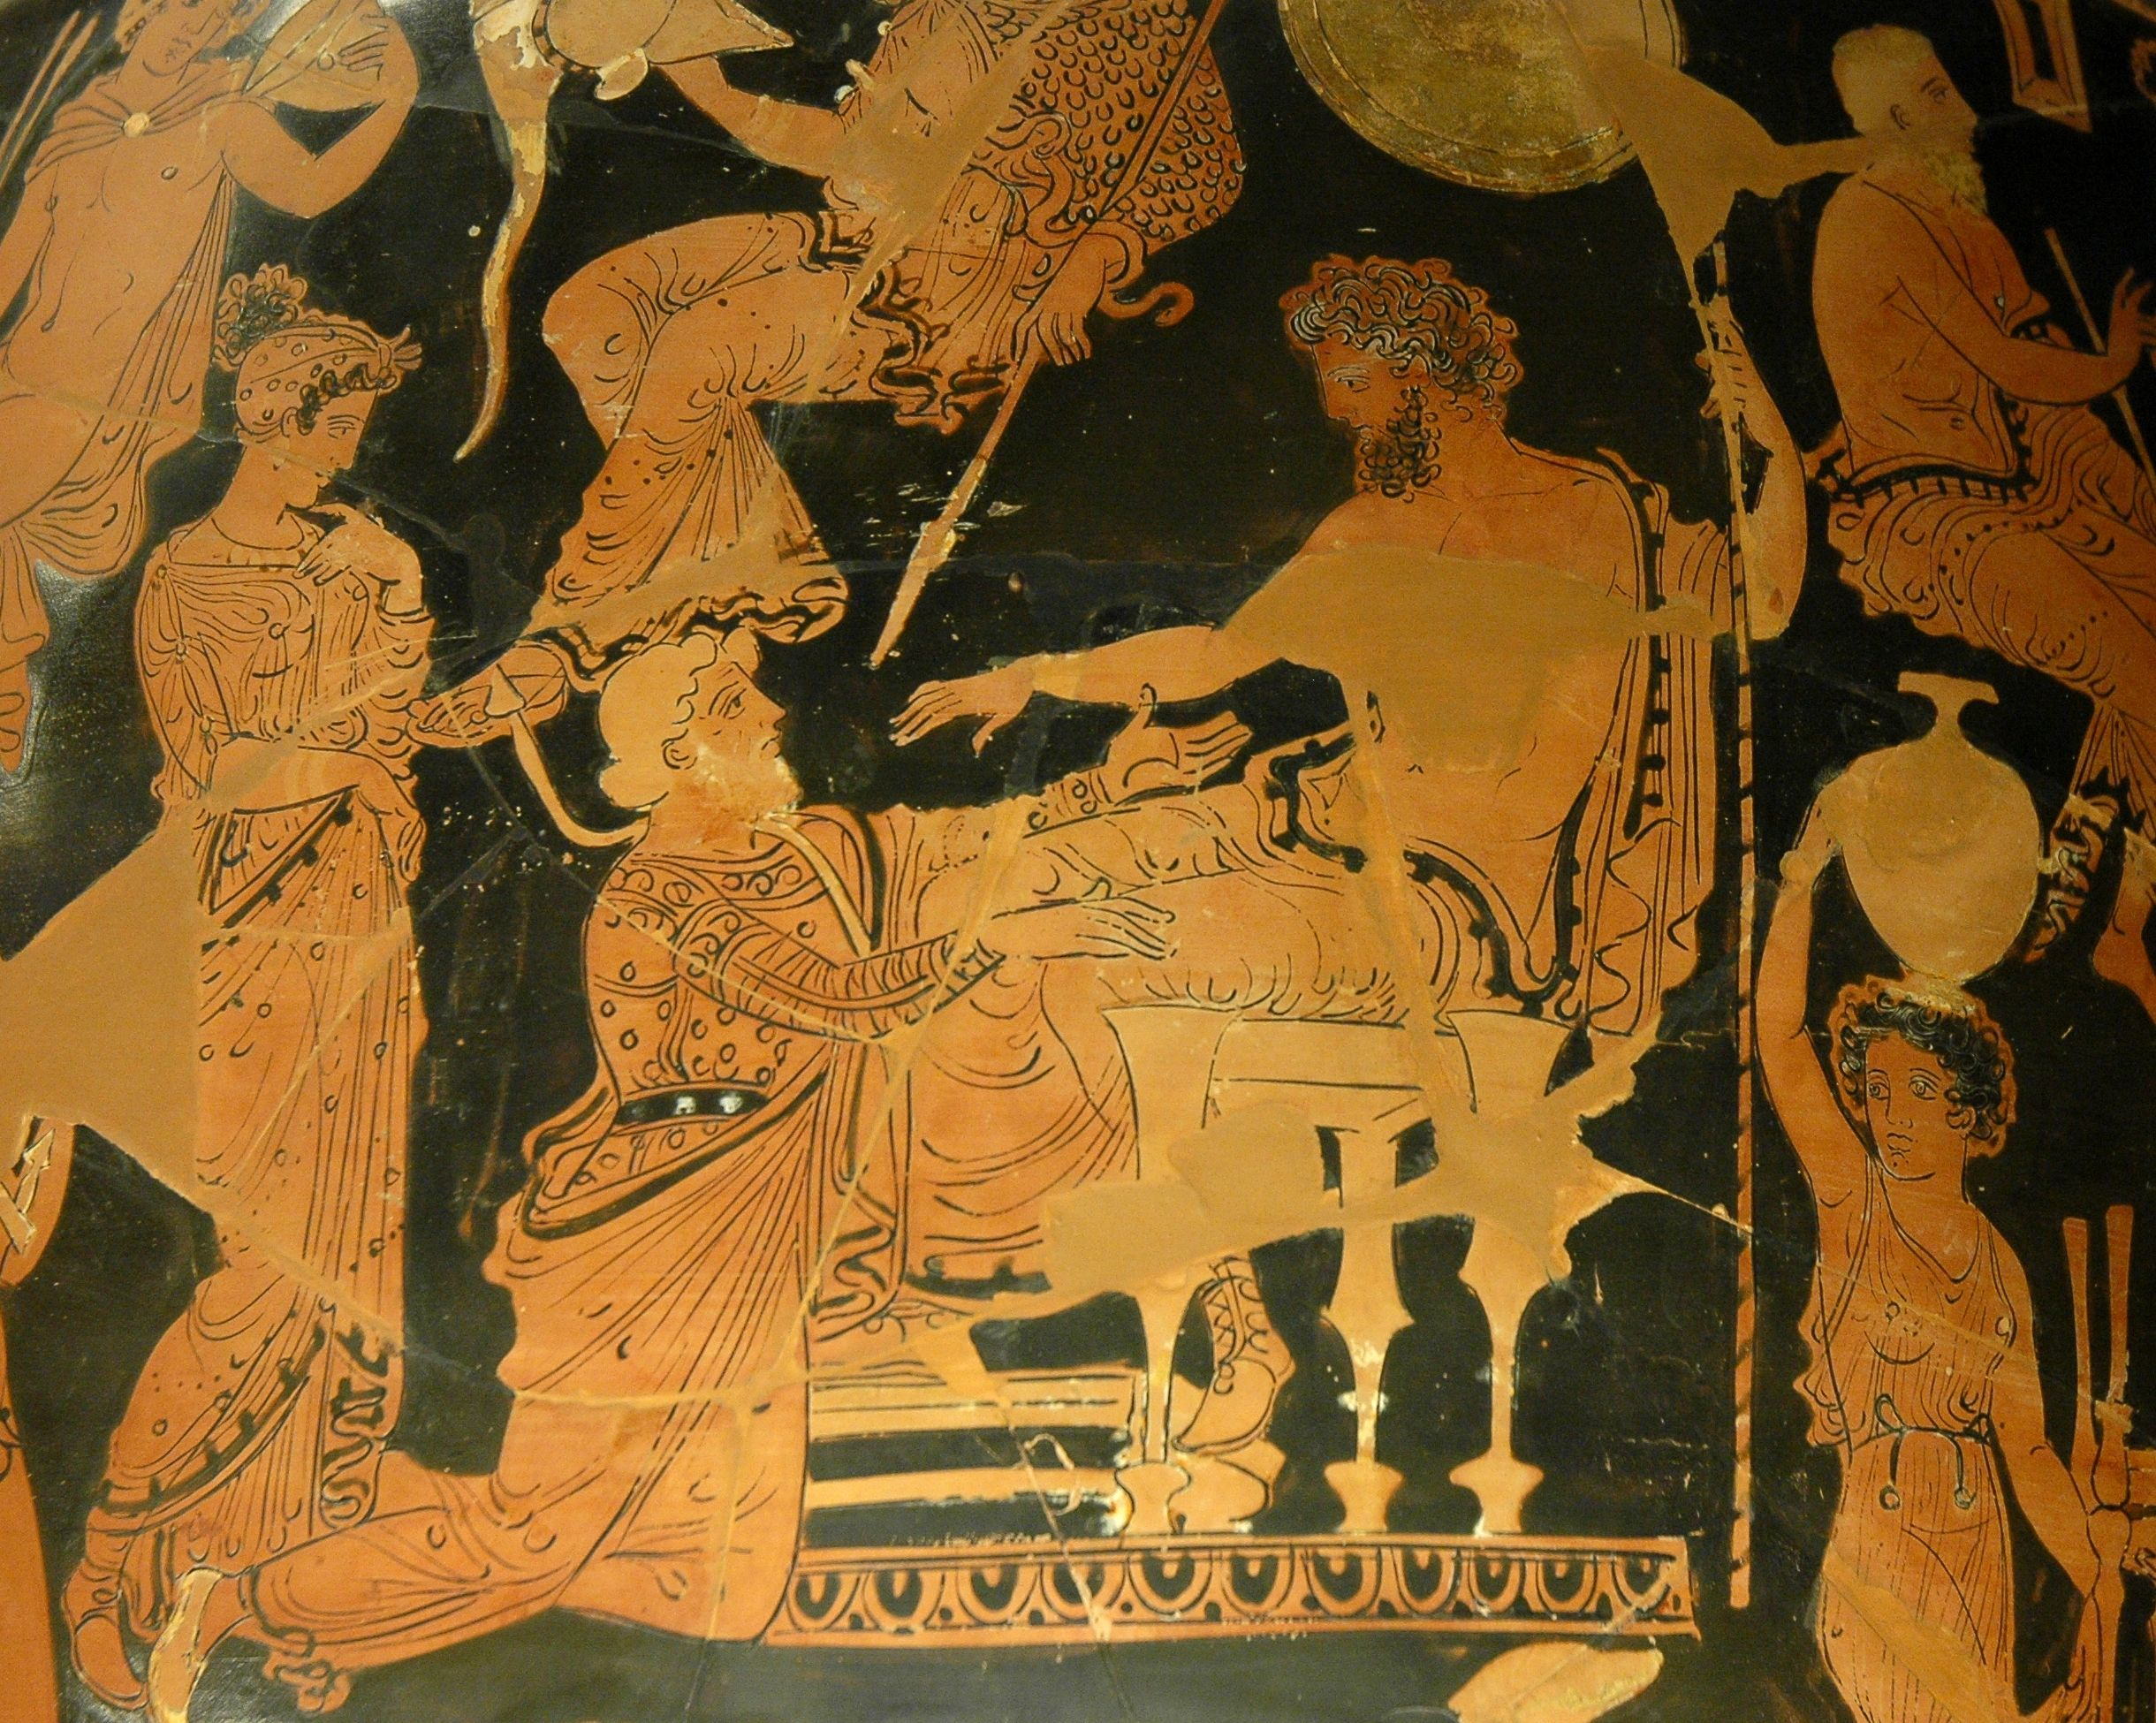 brygos vasepainter trojan warriors meet the greeks before troy achilles sarcophagus trojan war achilles tending the wounded patroclus attic red figure kylix ca 500 bc i